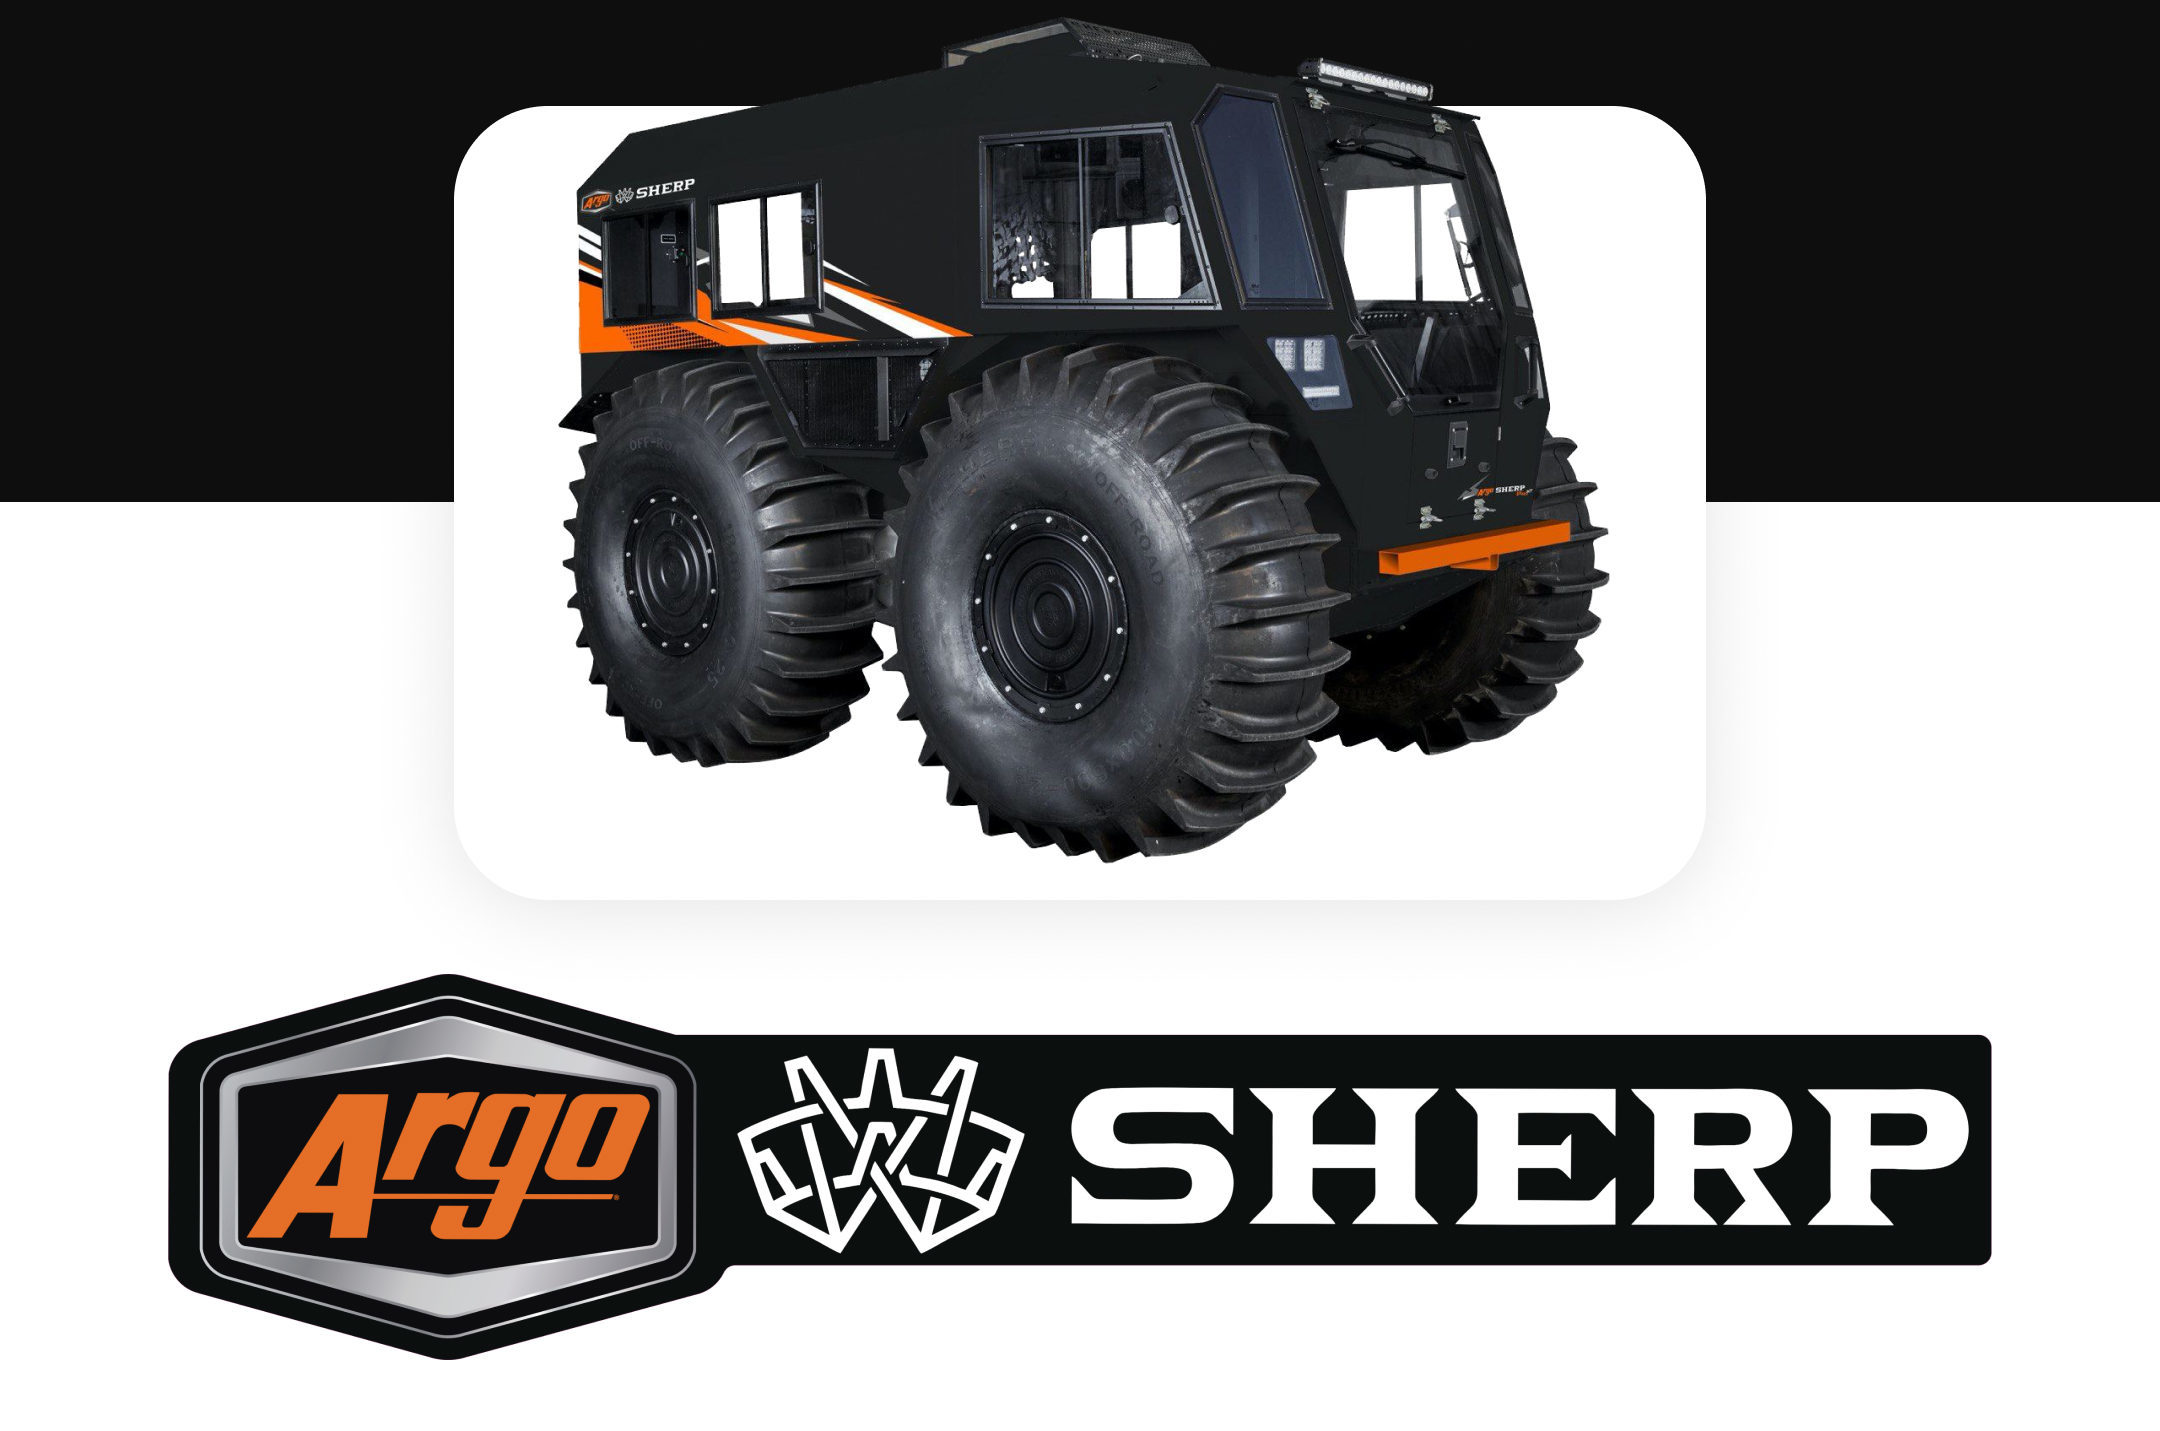 SHERP enters strategic co-branding deal with ARGO